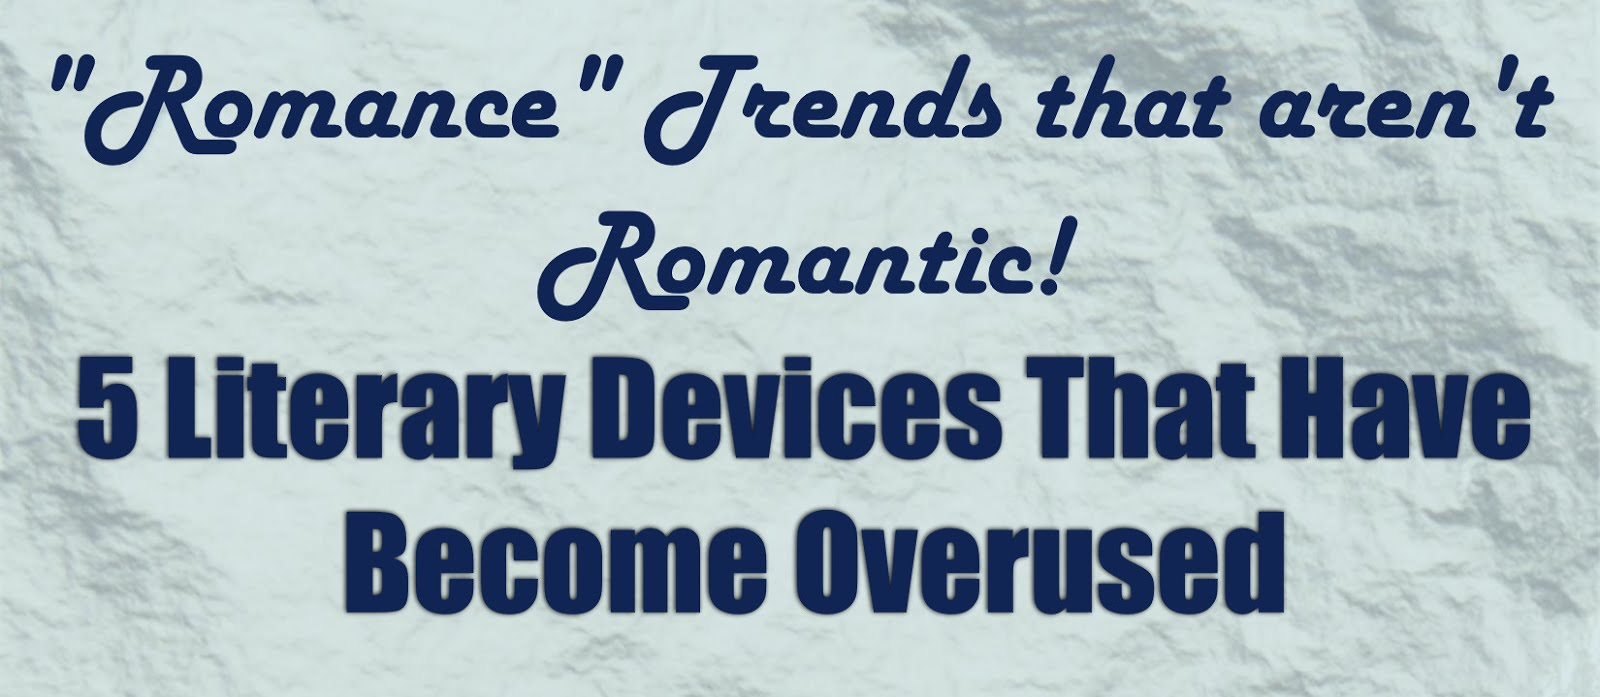 5 Literary Devices That Have Become Overused in Romance